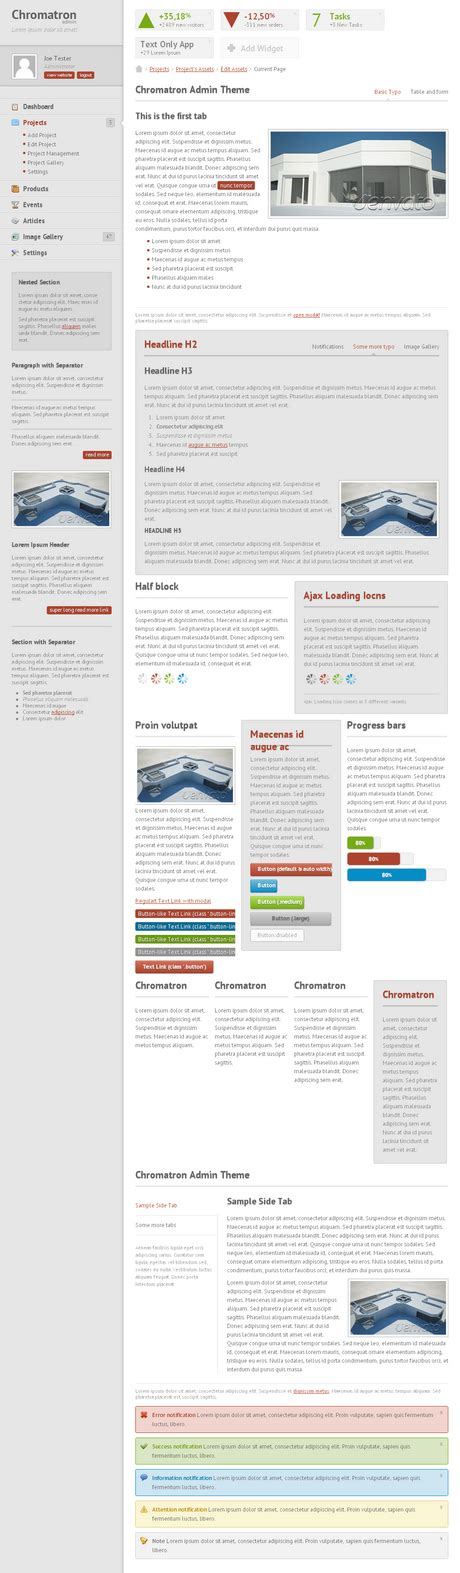 wordpress tutorial themeforest chromatron wordpress theme by themeforest custom